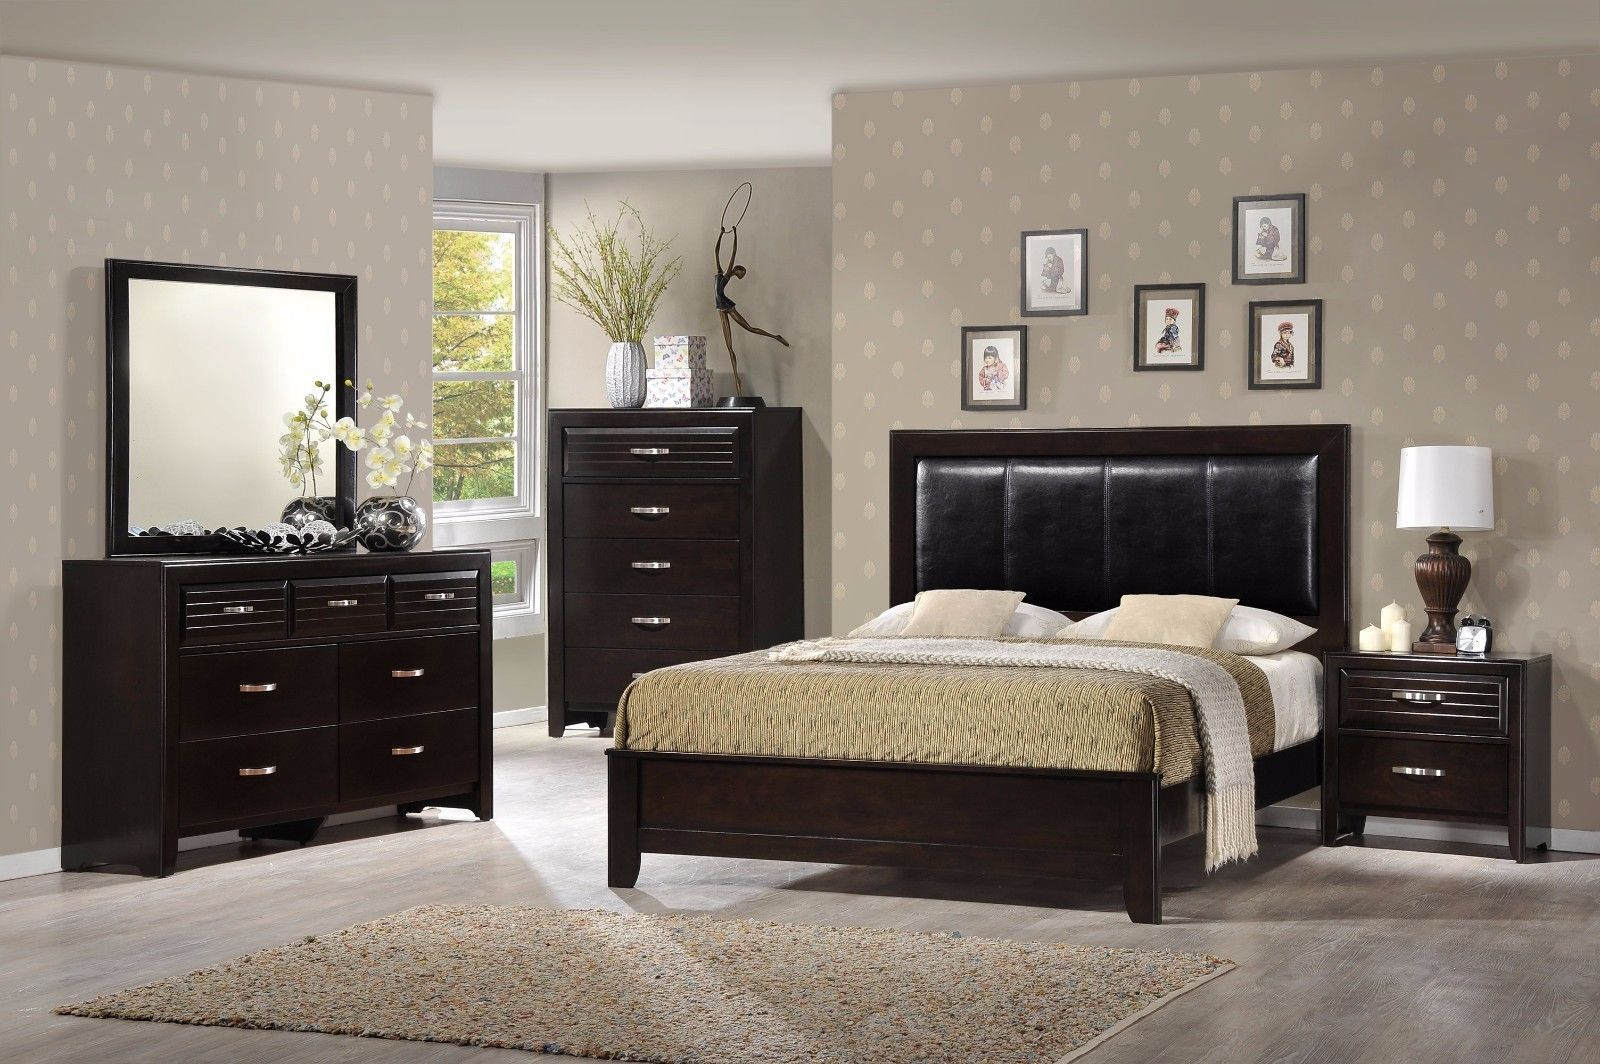 Crown Mark RB7400 Jocelyn King Size Bedroom Set 5pc. Transitional Dark Espresso